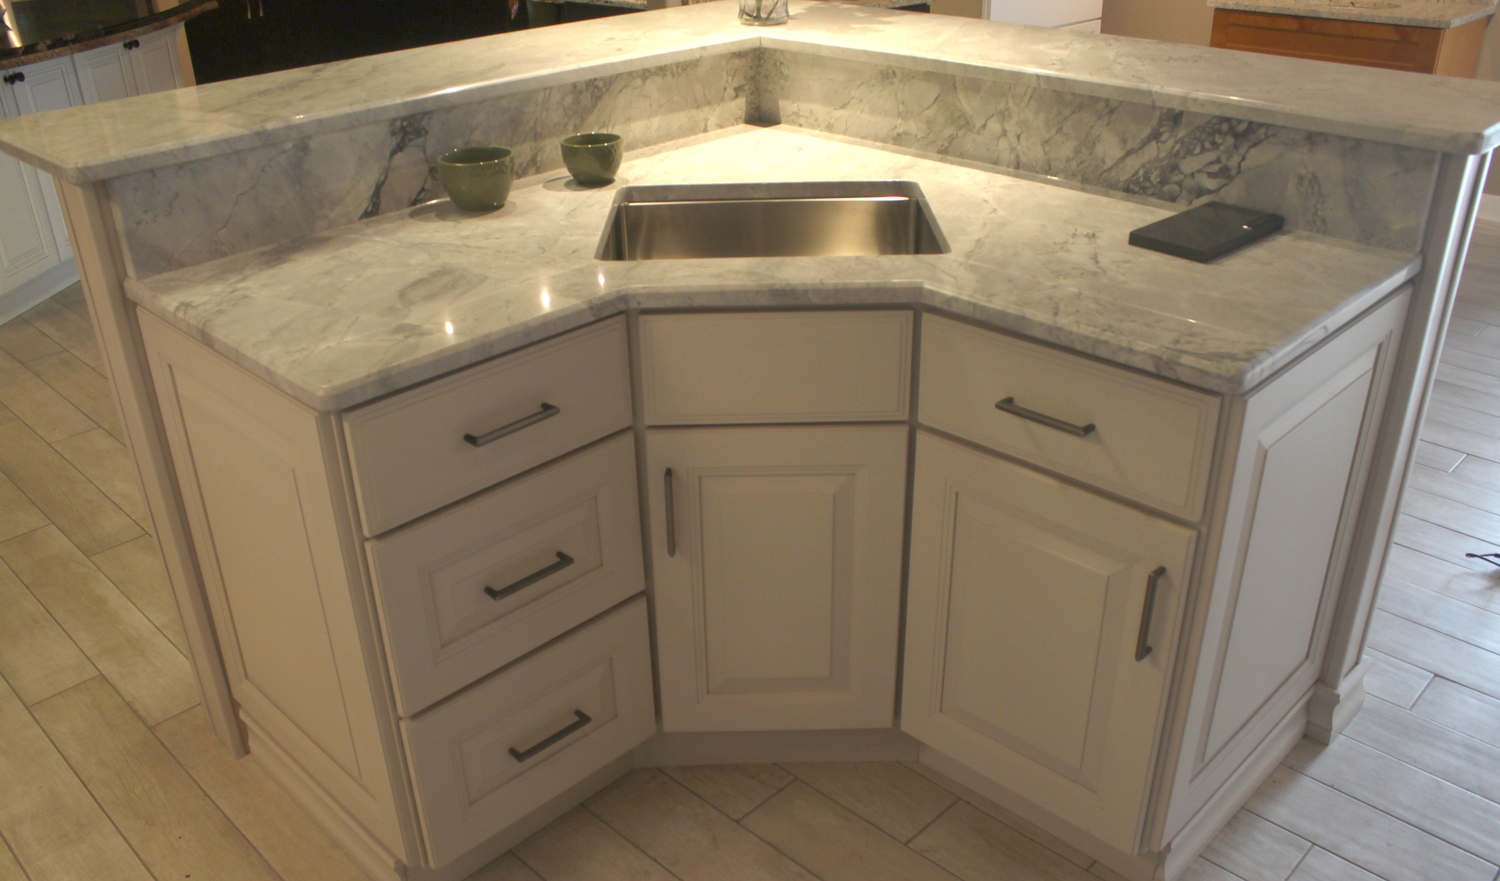 The residents of evanston see rock counter as the pick of the litter when it comes to kitchen cabinets countertops sinks and bath